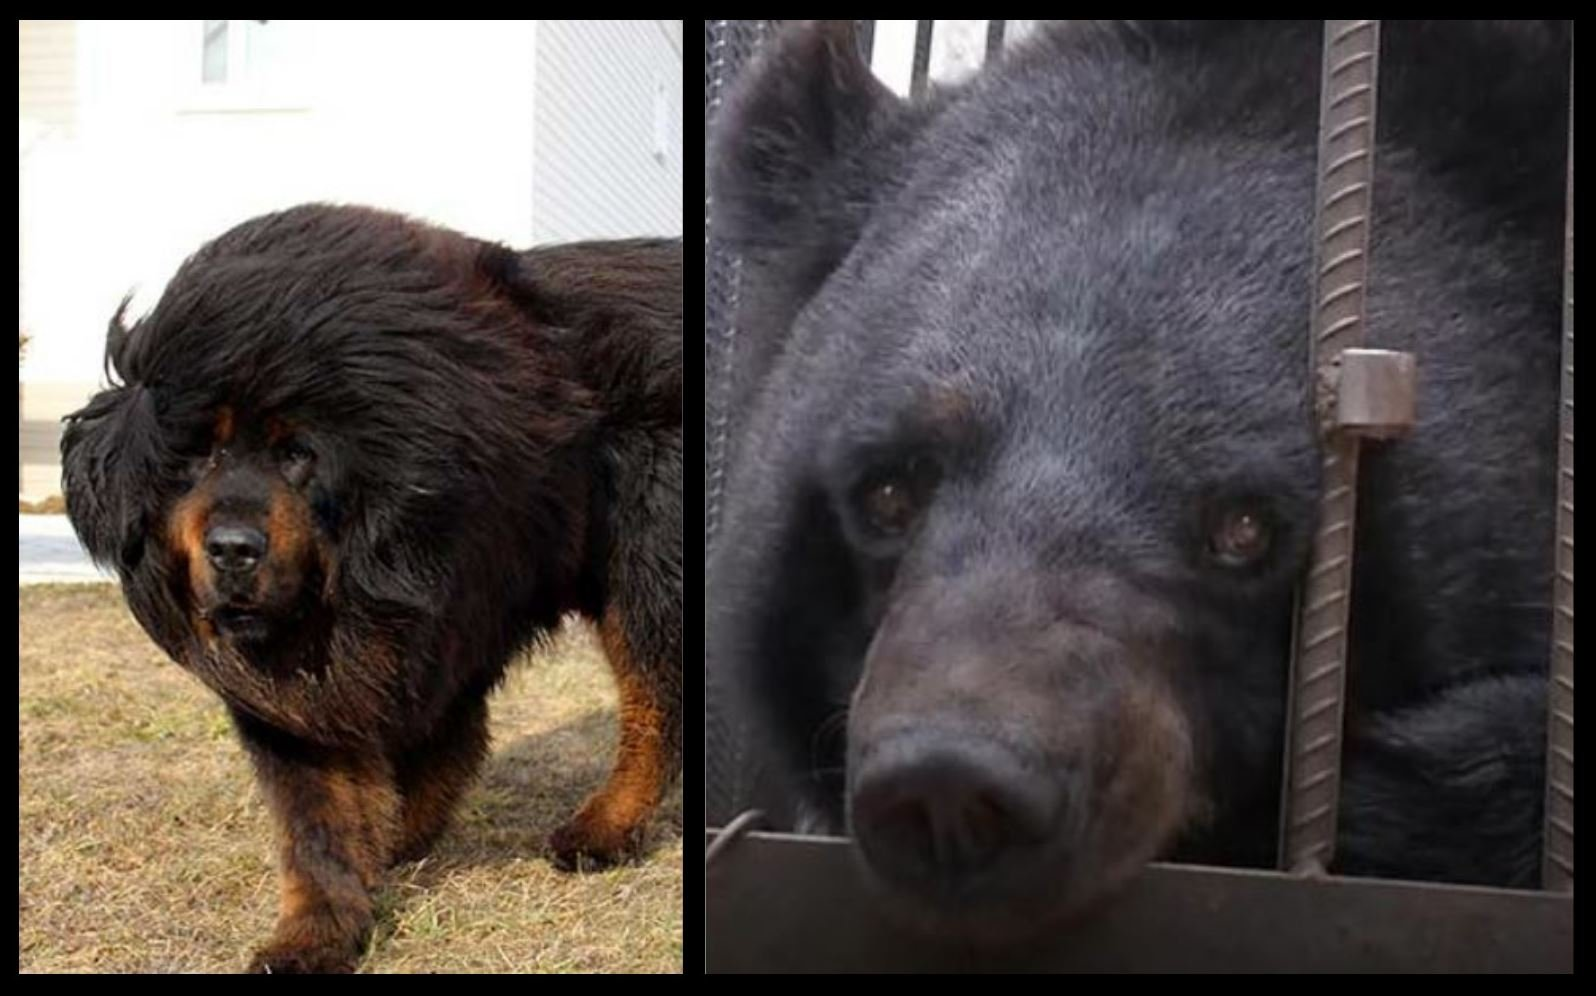 The couple thought they were purchasing a Tibetan Mastiff, like the dog on the left, but what they actually ended up raising for two years was a black bear, pictured on the right.